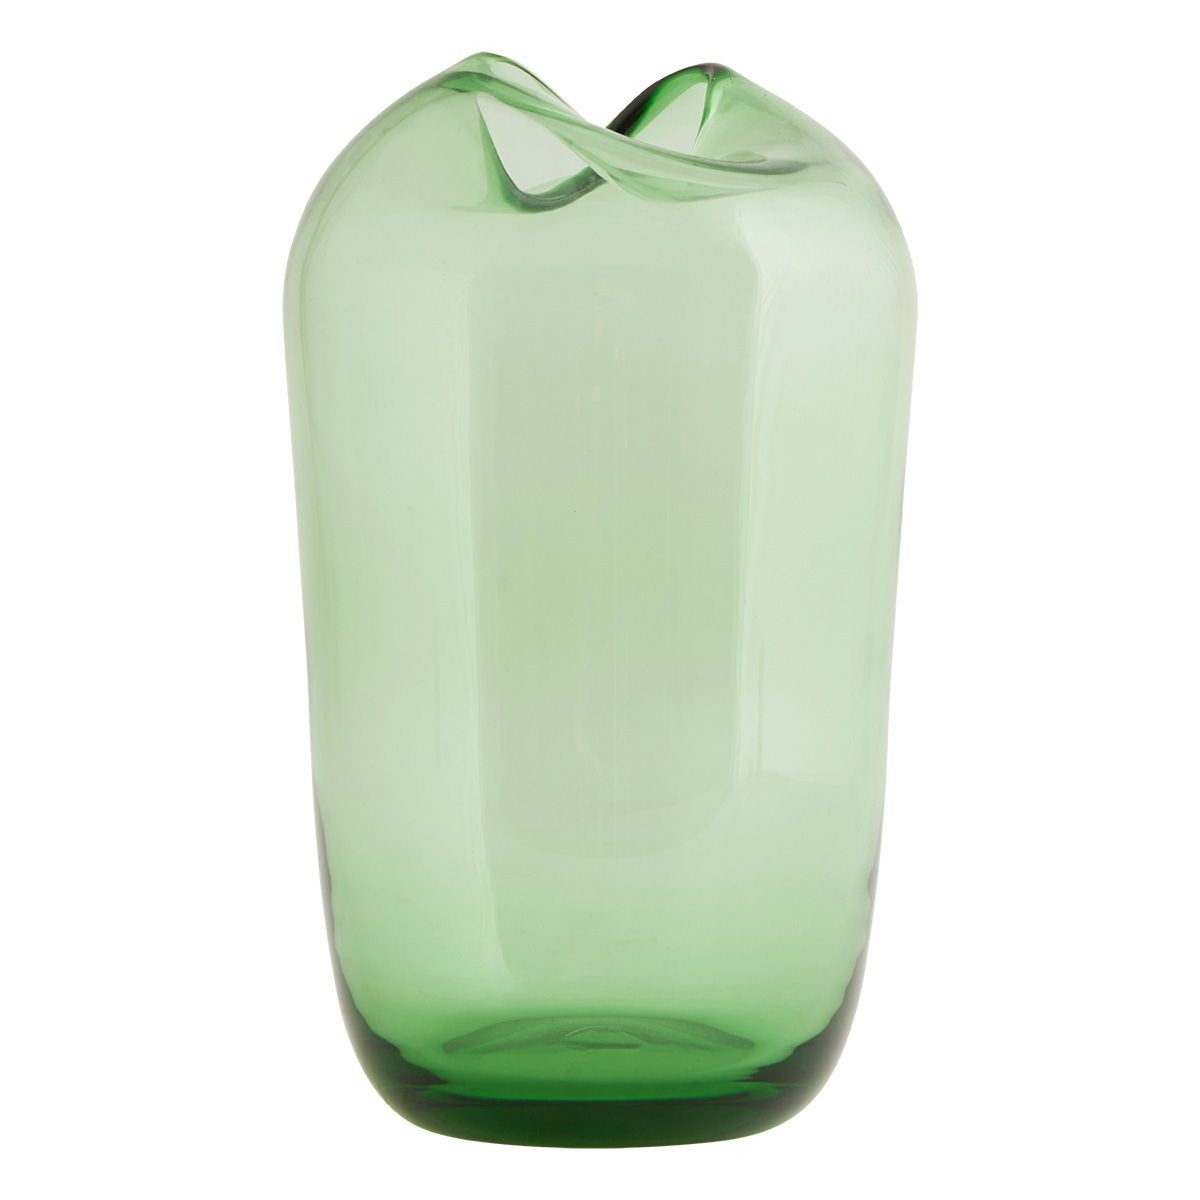 12 Unique Large Clear Vases for Cheap 2021 free download large clear vases for cheap of elegantnac2ad vaza wave z barevnaho skla od danska firmy house doctor within cuemars cuemars large green wave vase this beautiful decorative vase will give a f